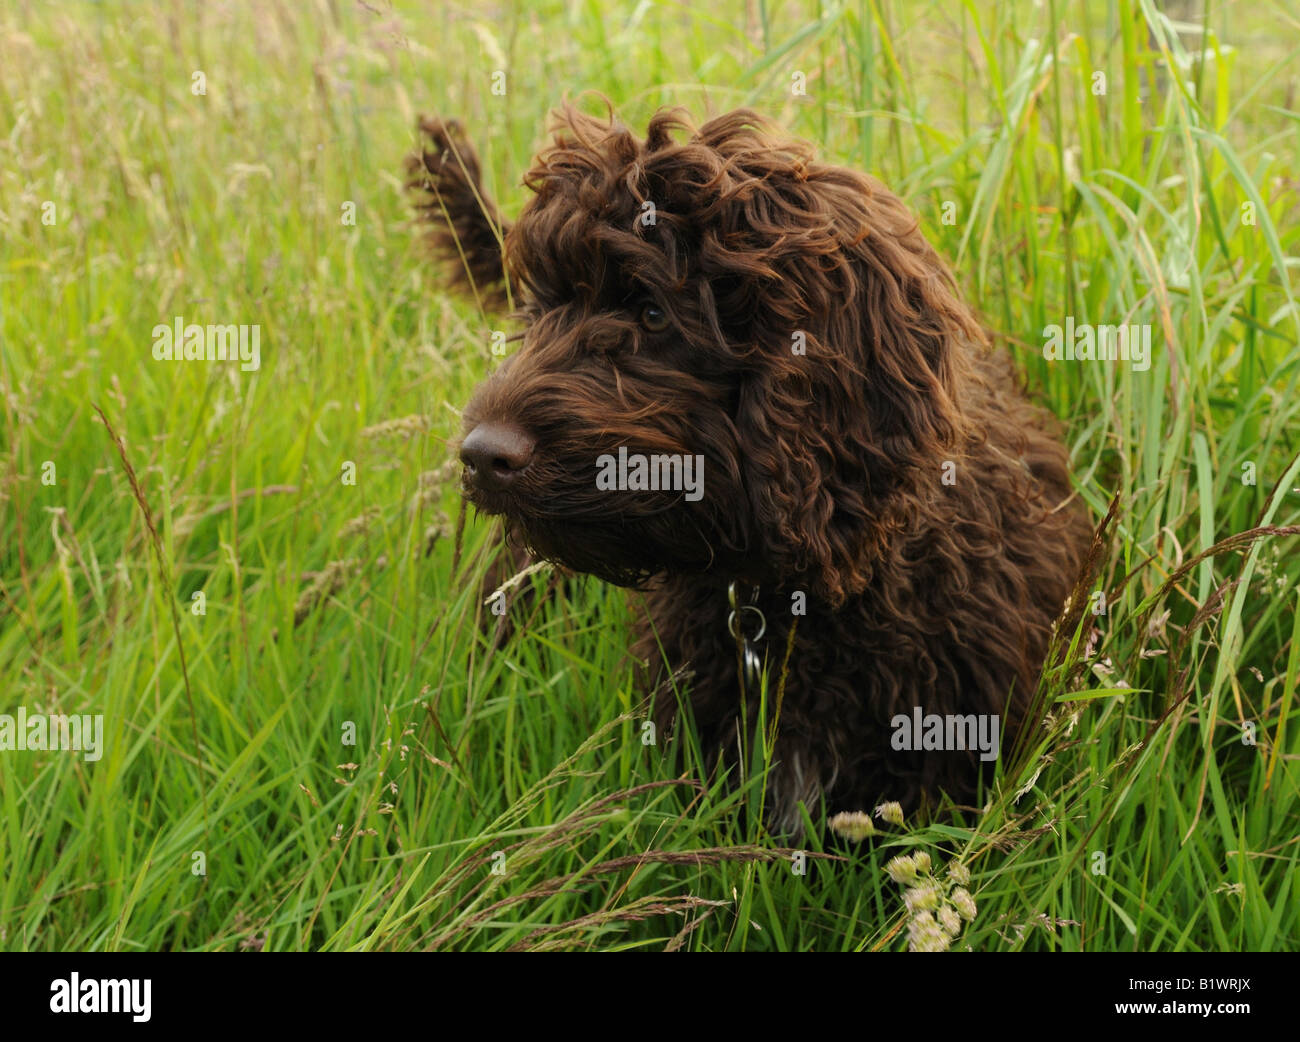 chocolate cookapoo puppy in long grass - Stock Image